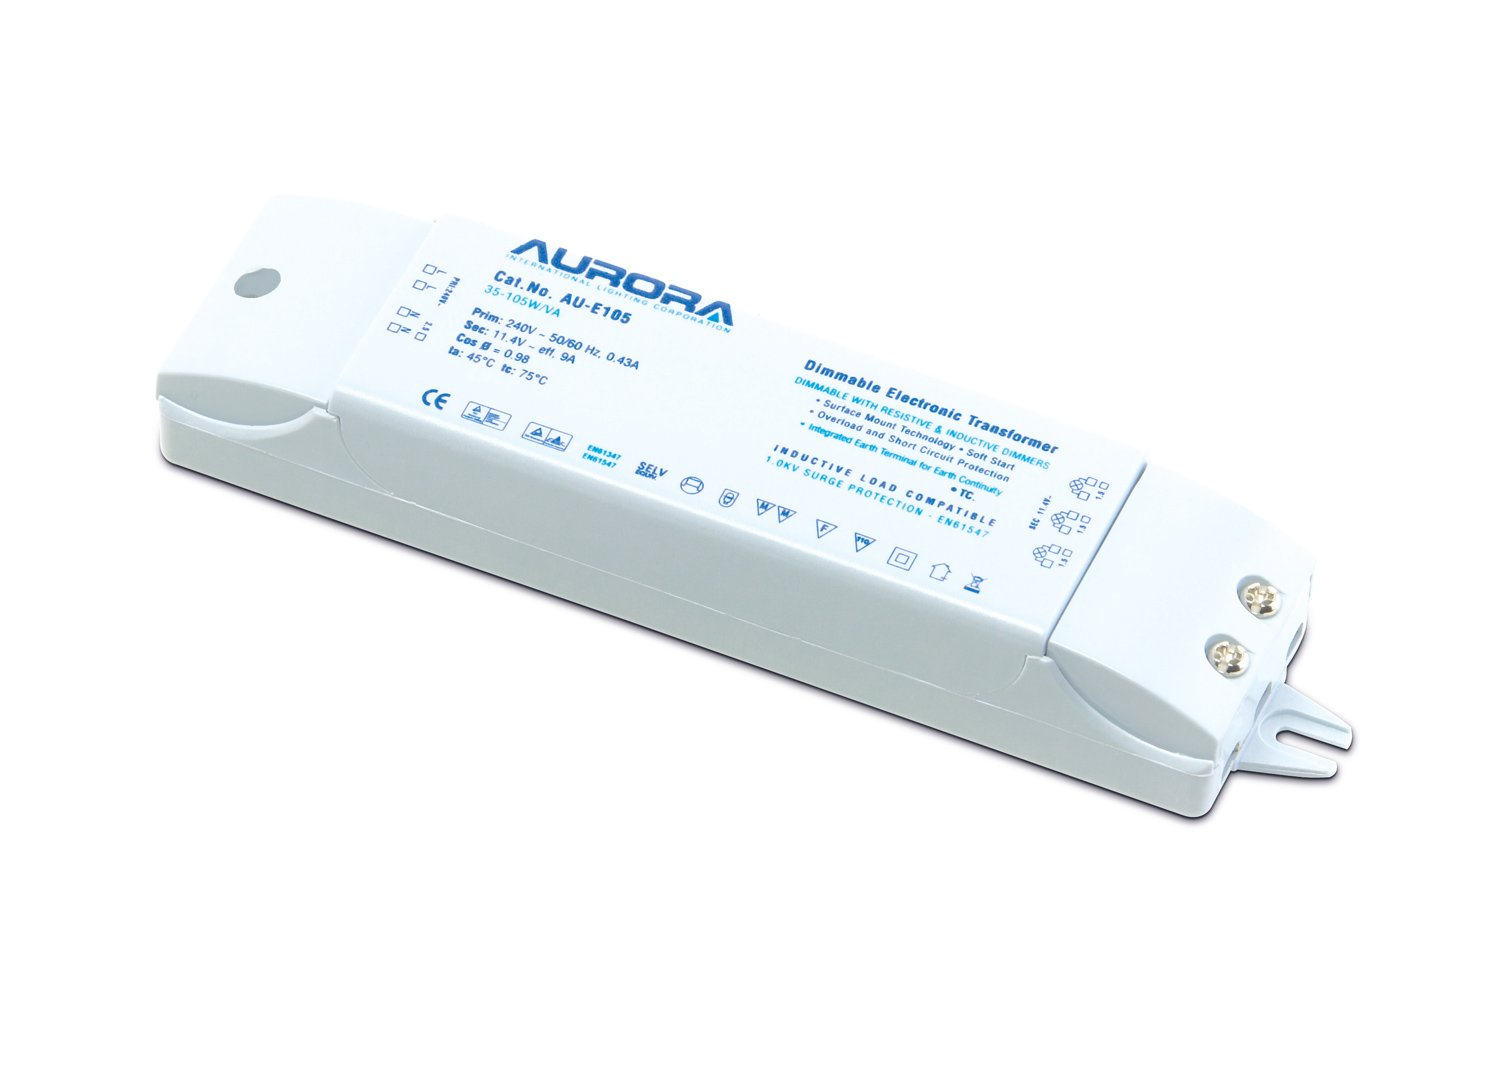 Aurora 35-105W/ VA Dimmable Low Voltage Electronic Transformer, 105 W AU-105